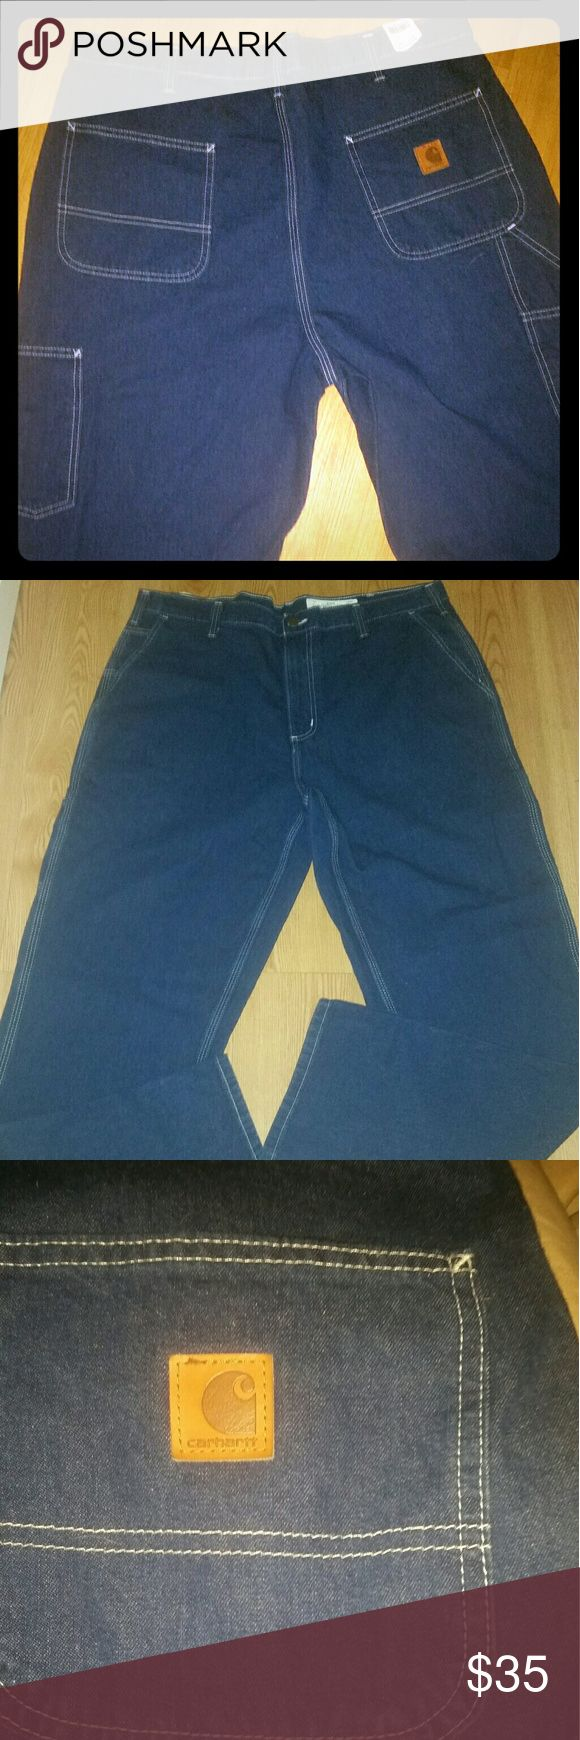 NWT Carhartt jeans NWT Carhart jeans I have 9 pair brand new with tags for $ 300 or $35 each Carhartt Jeans Relaxed